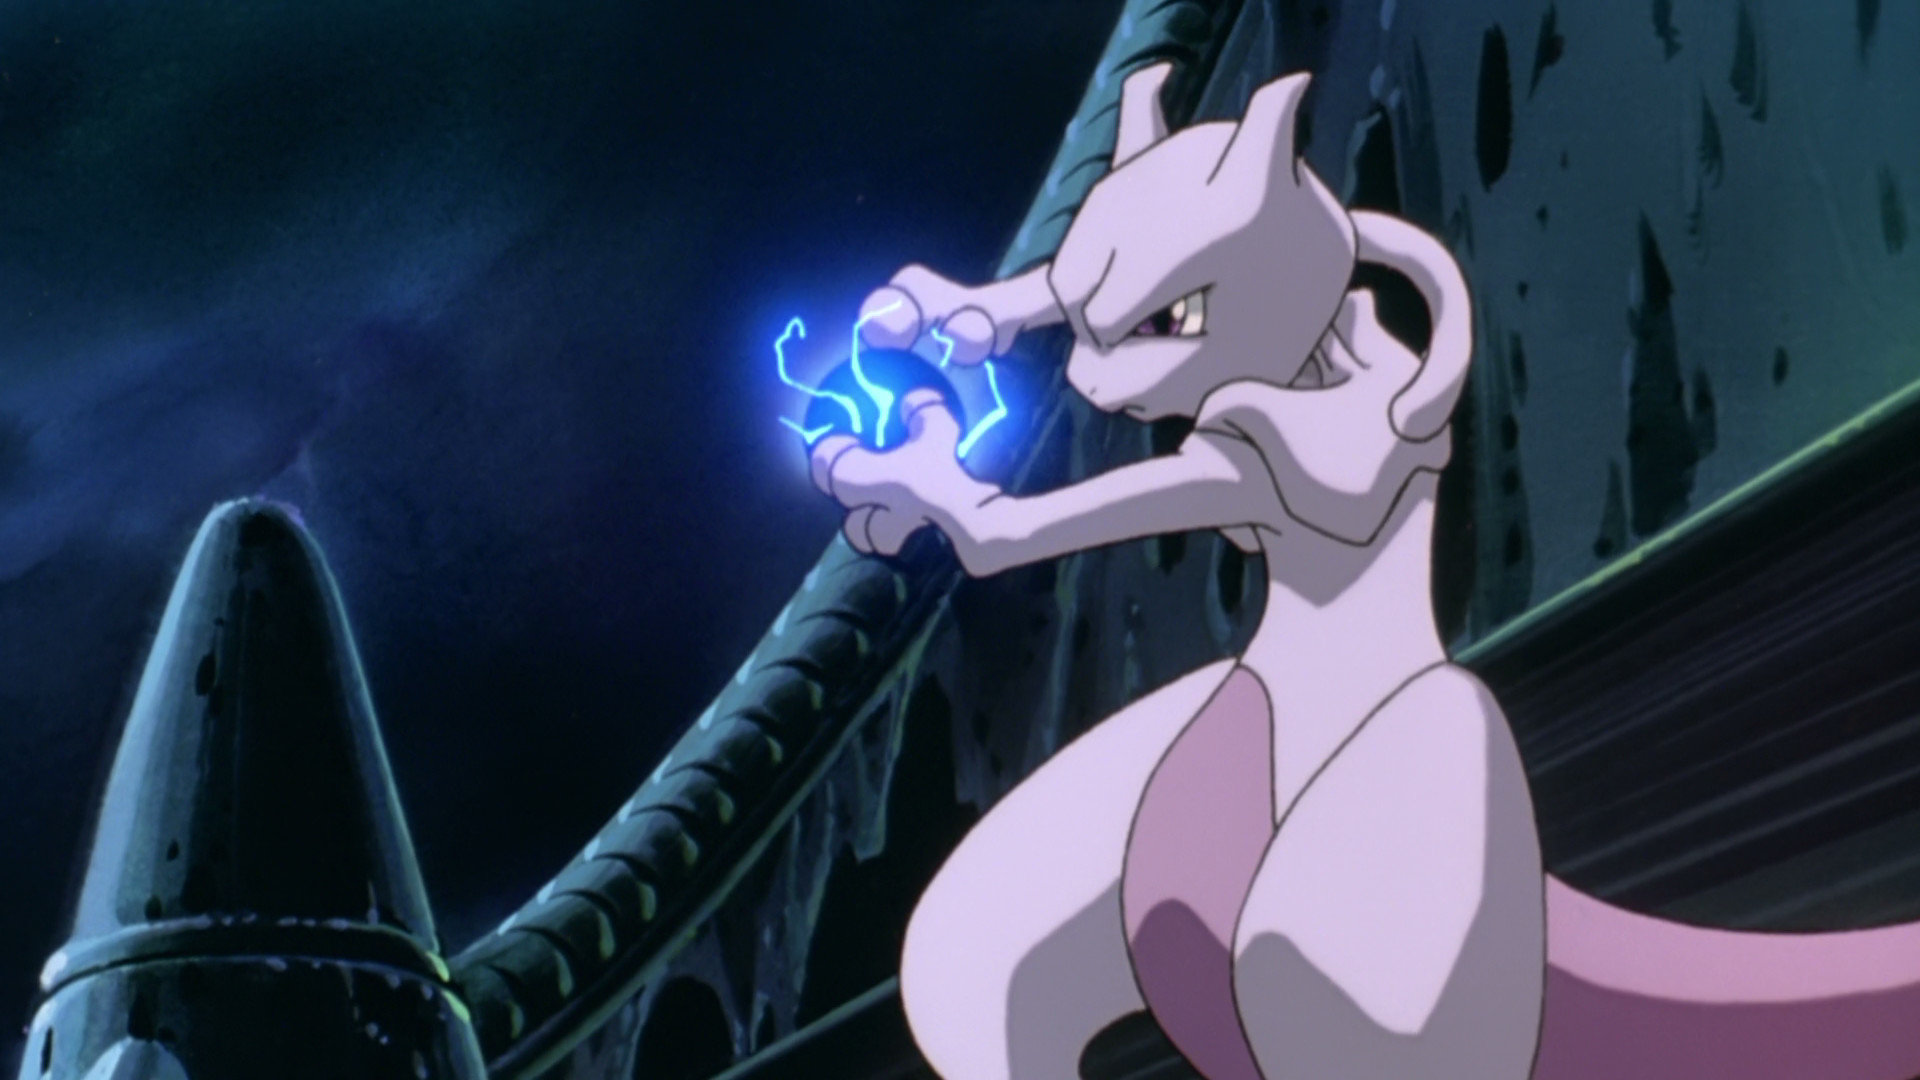 Download hd 1080p Mewtwo (Pokemon) computer wallpaper ID:279381 for free